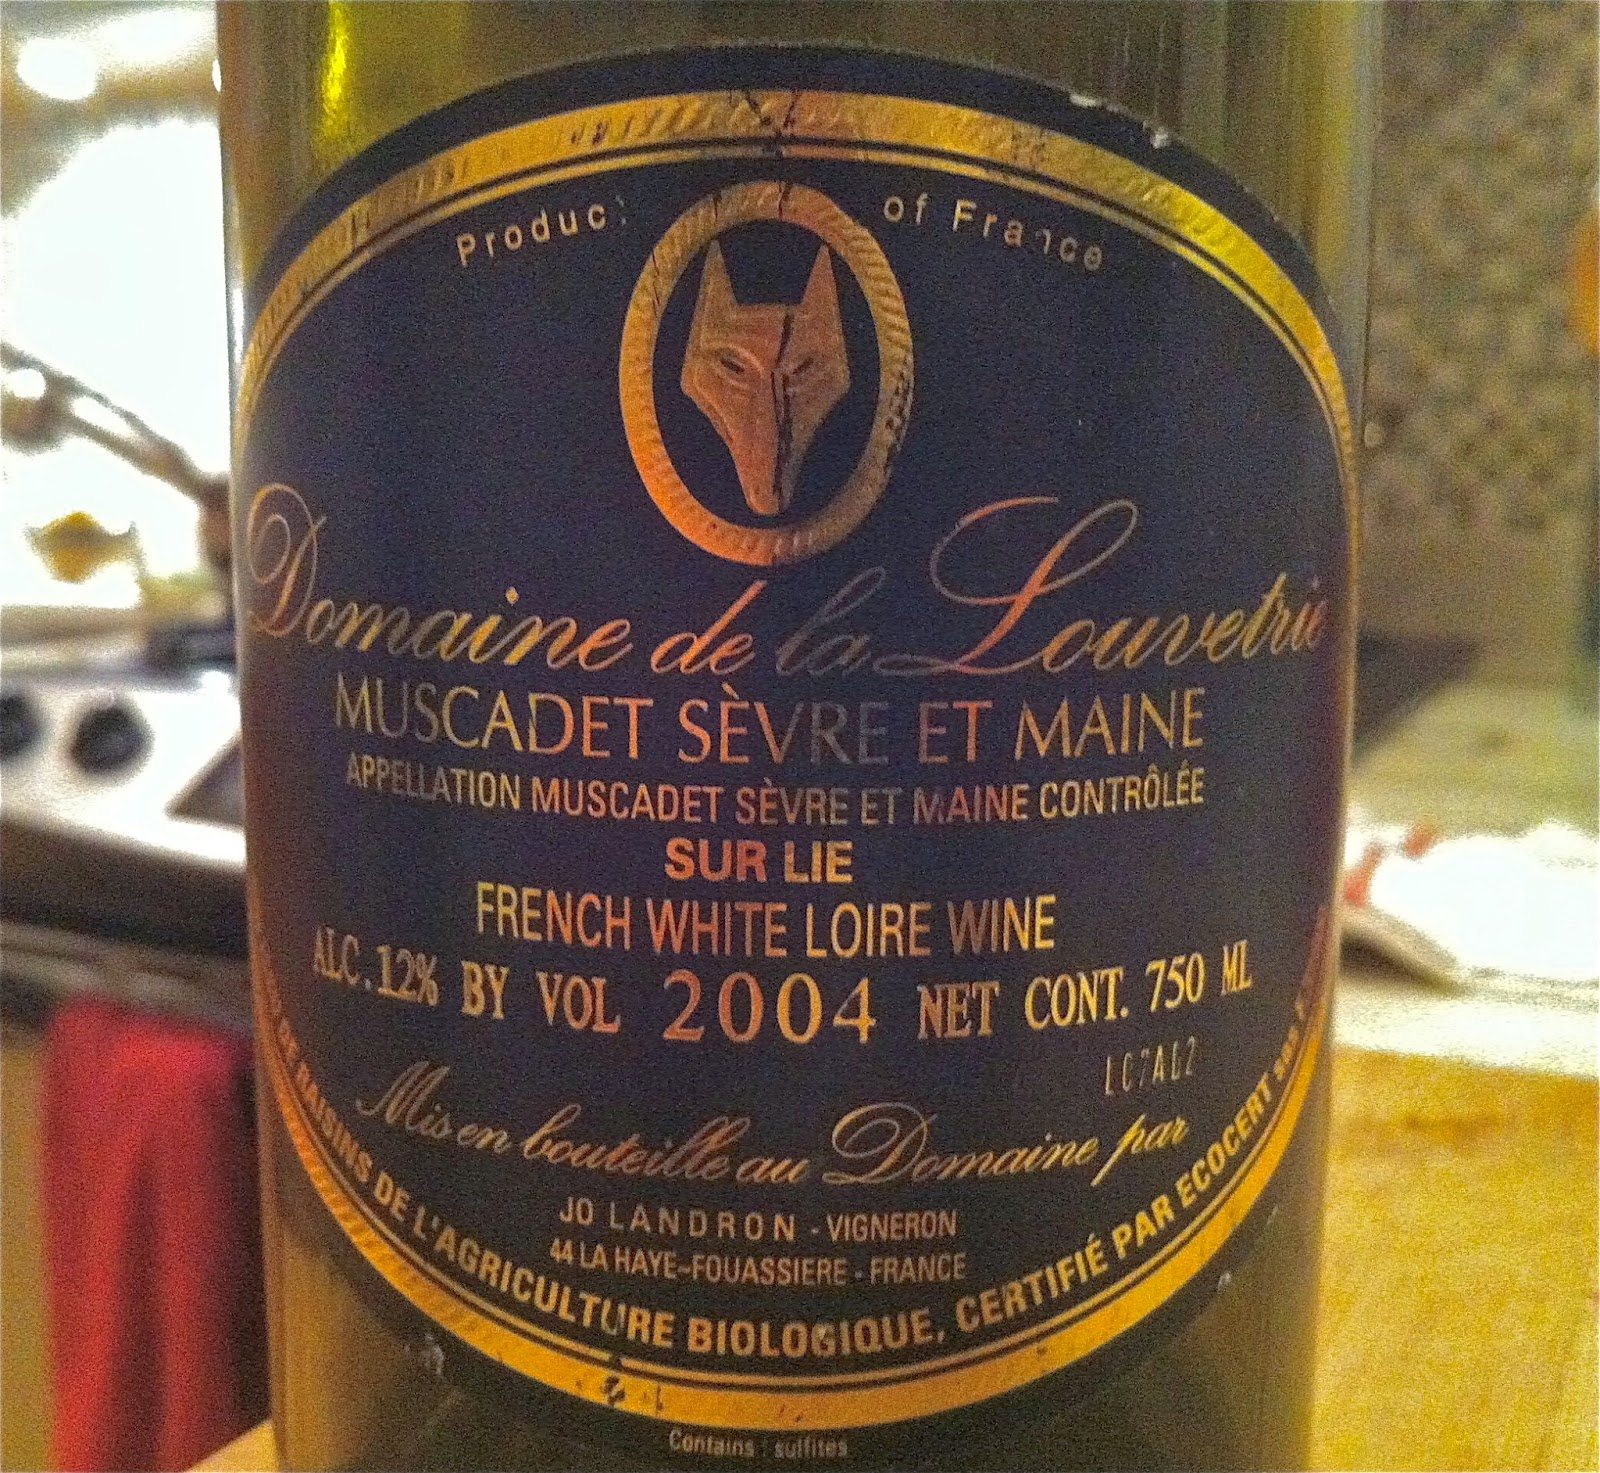 I Opened A Bottle Of Muscadet, One Of The Great Wines From That Place   The  2004 Domaine De La Louvetrie Muscadet Le Fief Du Breil.